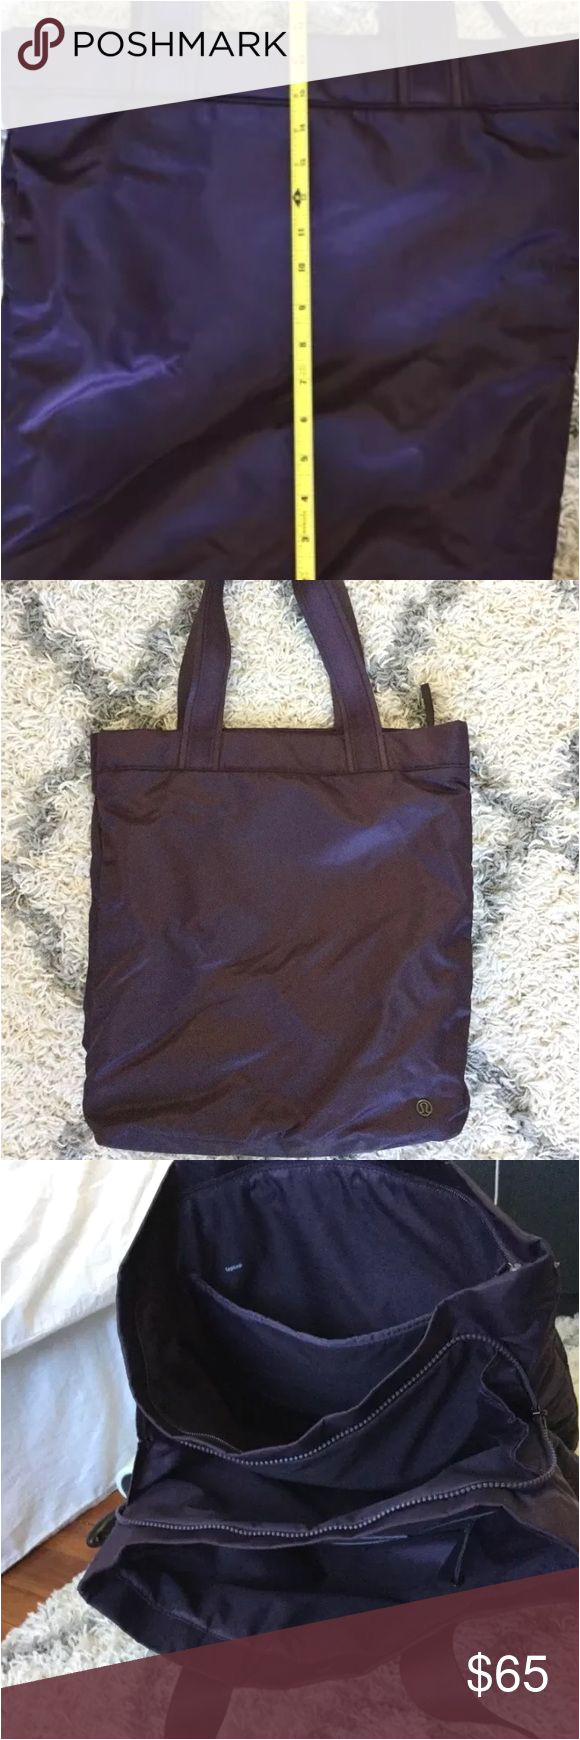 lululemon double up gym bag tote excellent condition lululemon double up gym tote bag in black